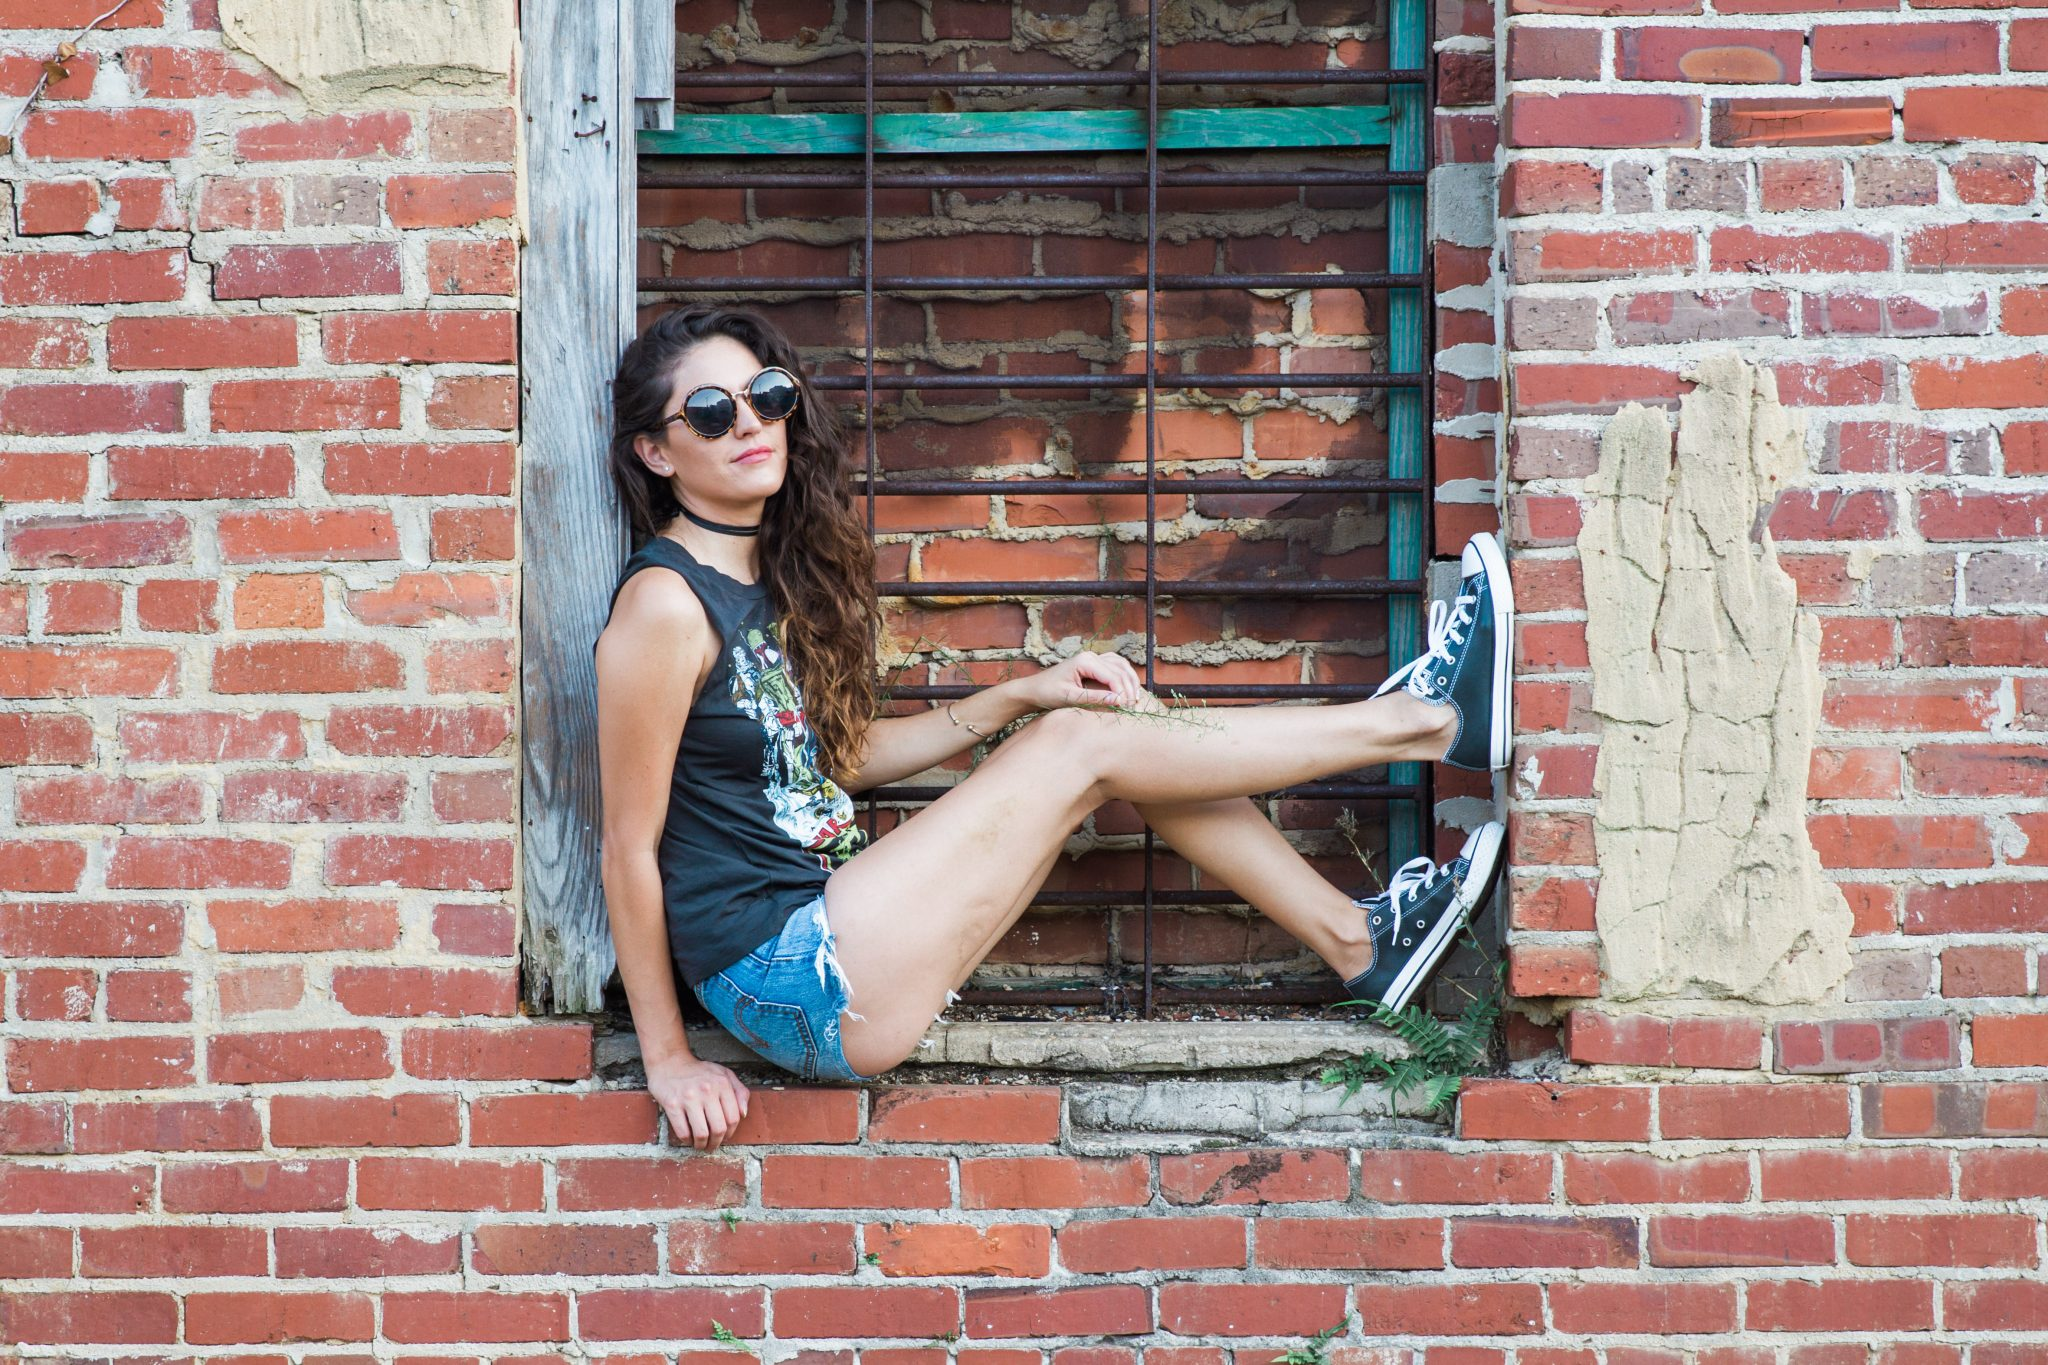 edgy style, rebellious style, star wars, grunge style, early fall style, early fall edgy outfit ideas, fall grunge outfit ideas, faux leather converse, how to style a graphic tee, levis cutoffs, black choker